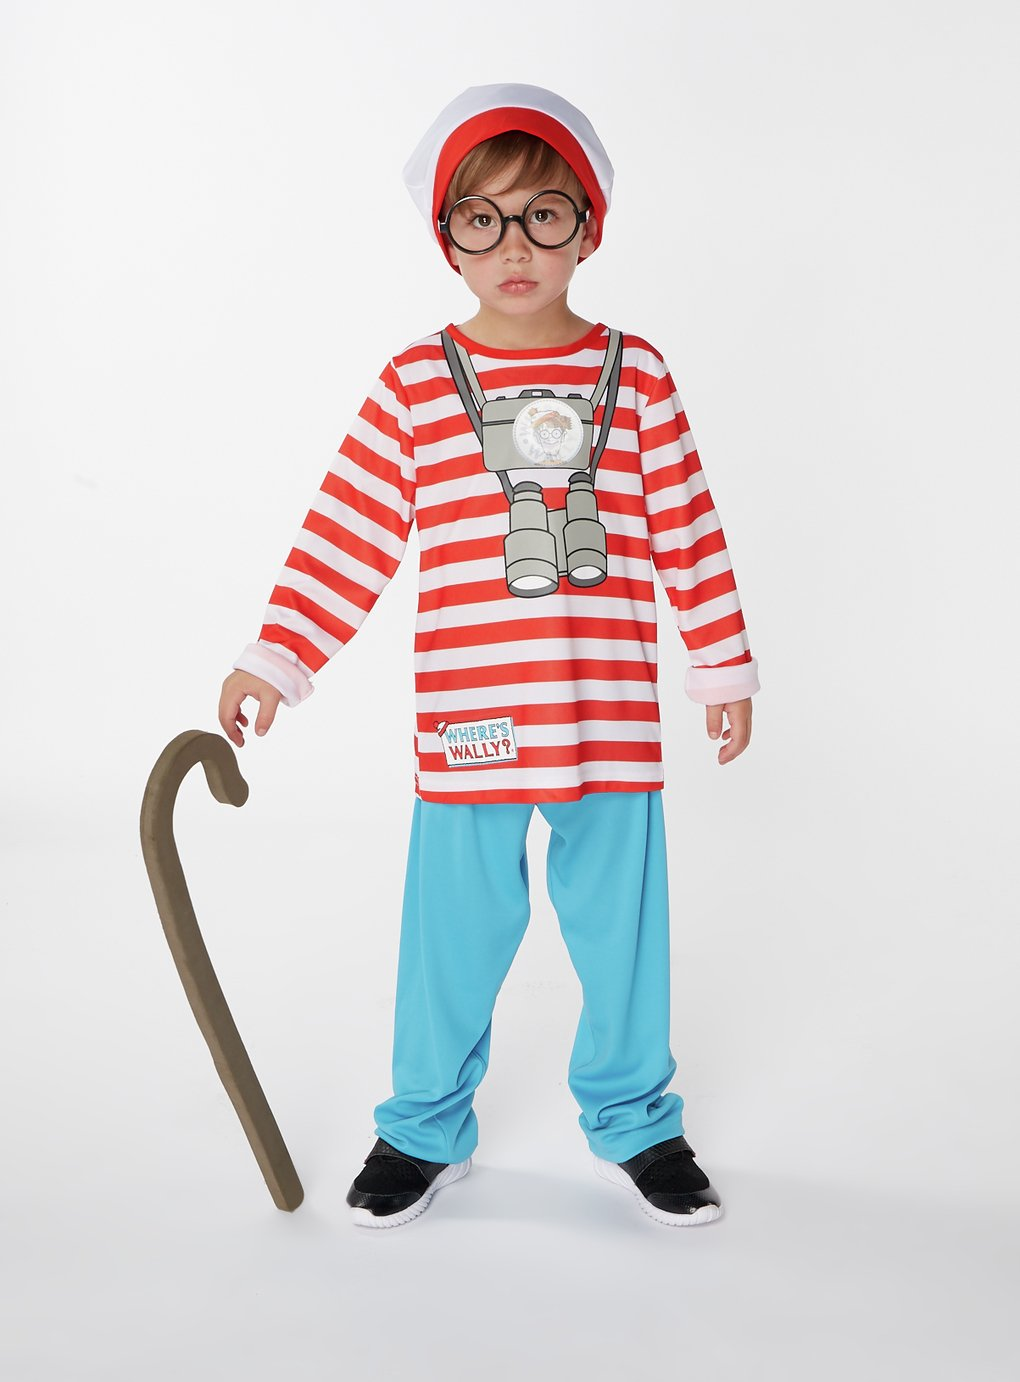 36db8dd029b Where s Wally Fancy Dress Costume - 7-8 Years (7473180)